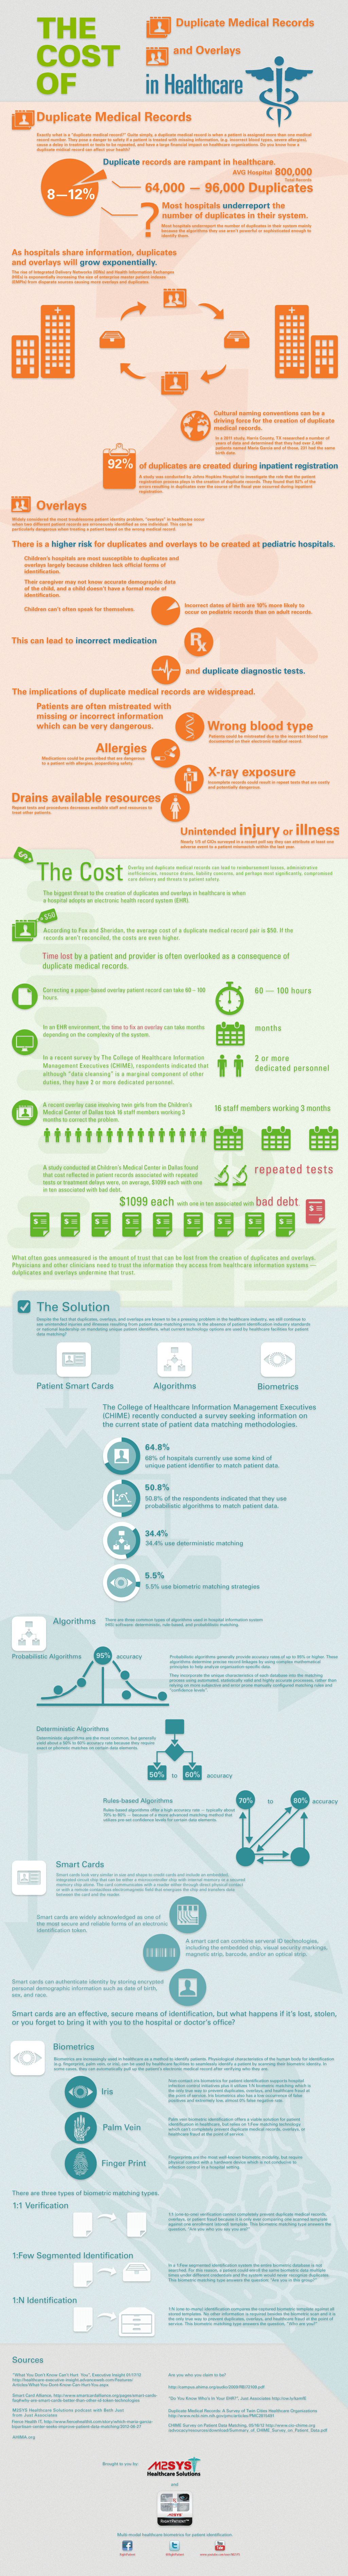 Cost-of-Duplicate-Medical-Records-infographic